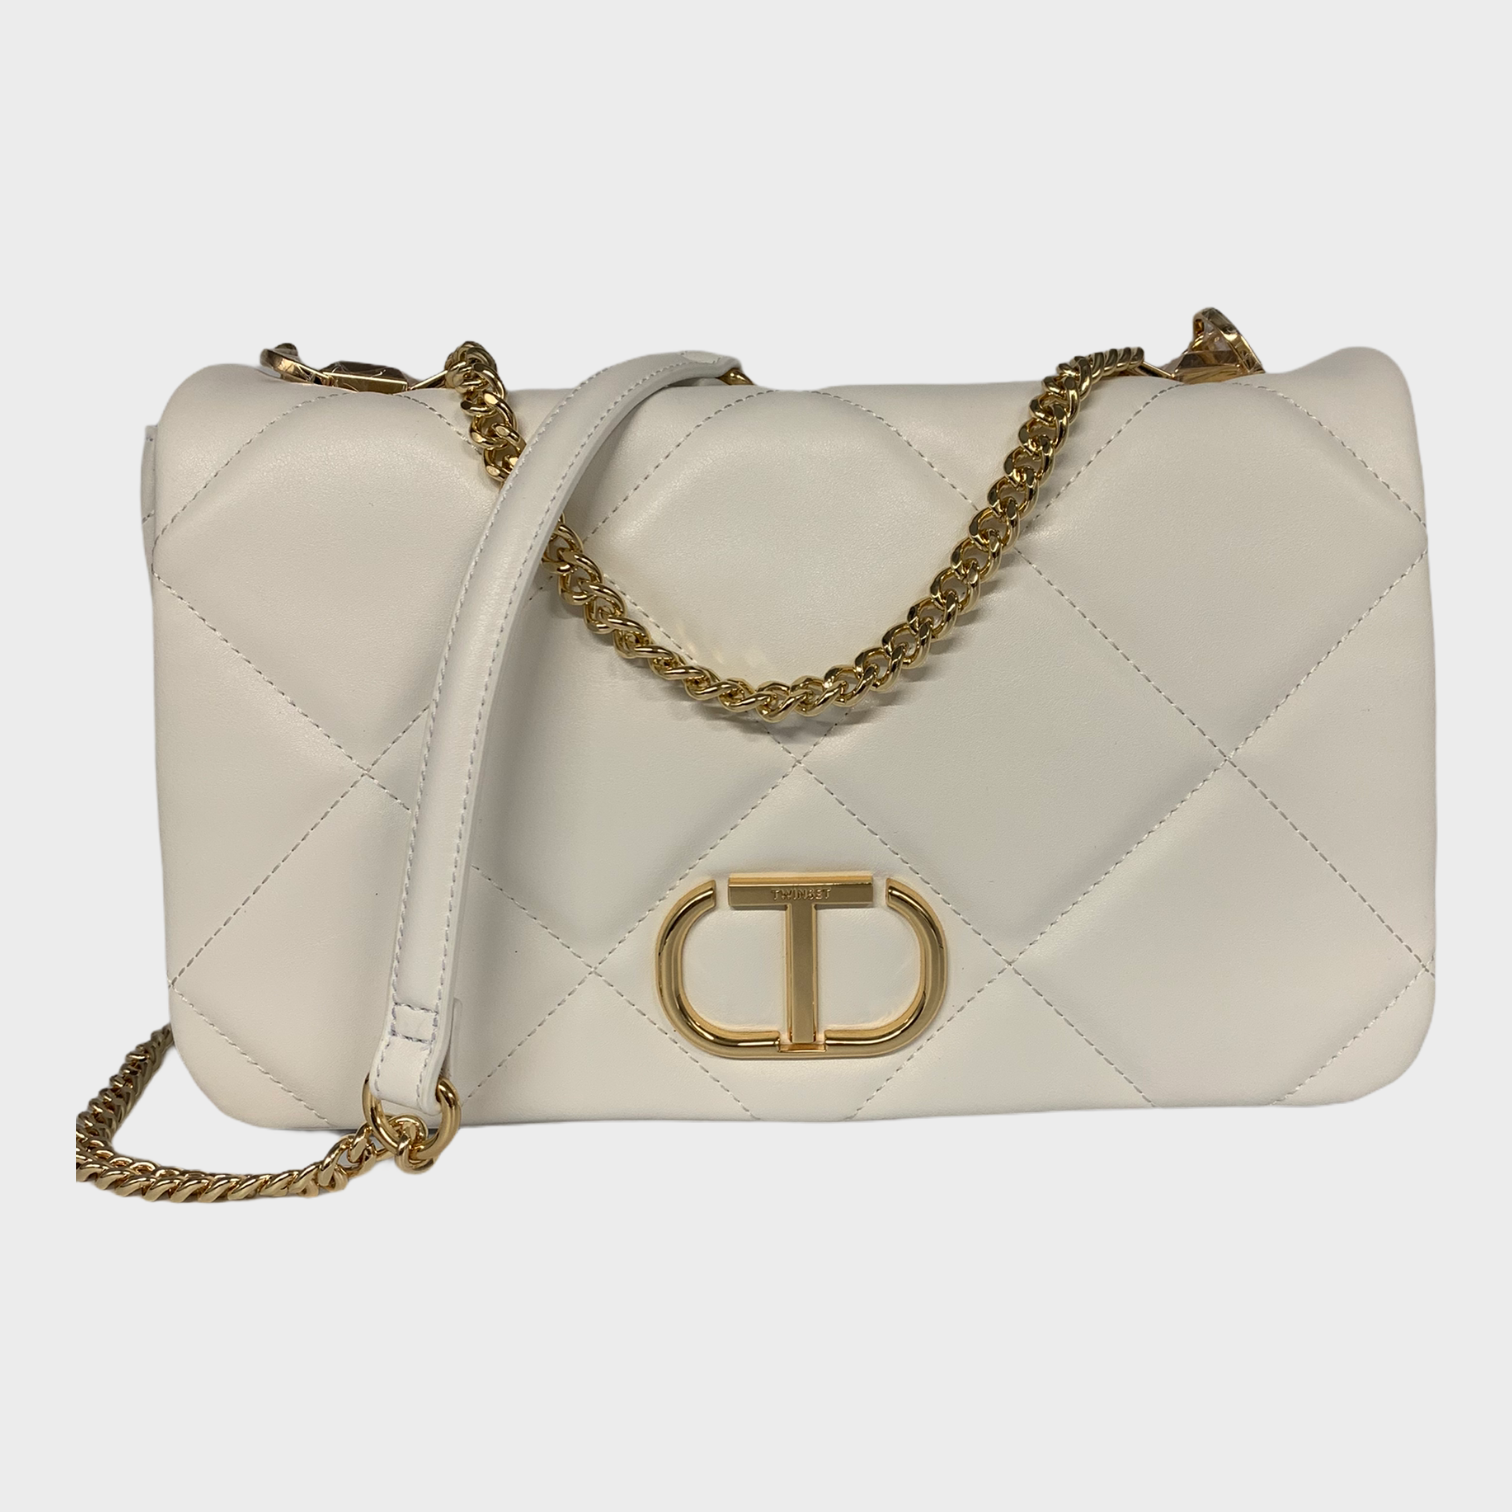 SHOPPING ON LINE TWINSET MILANO BORSA IN ECO PELLE NEW COLLECTION SPRING/SUMMER 2021